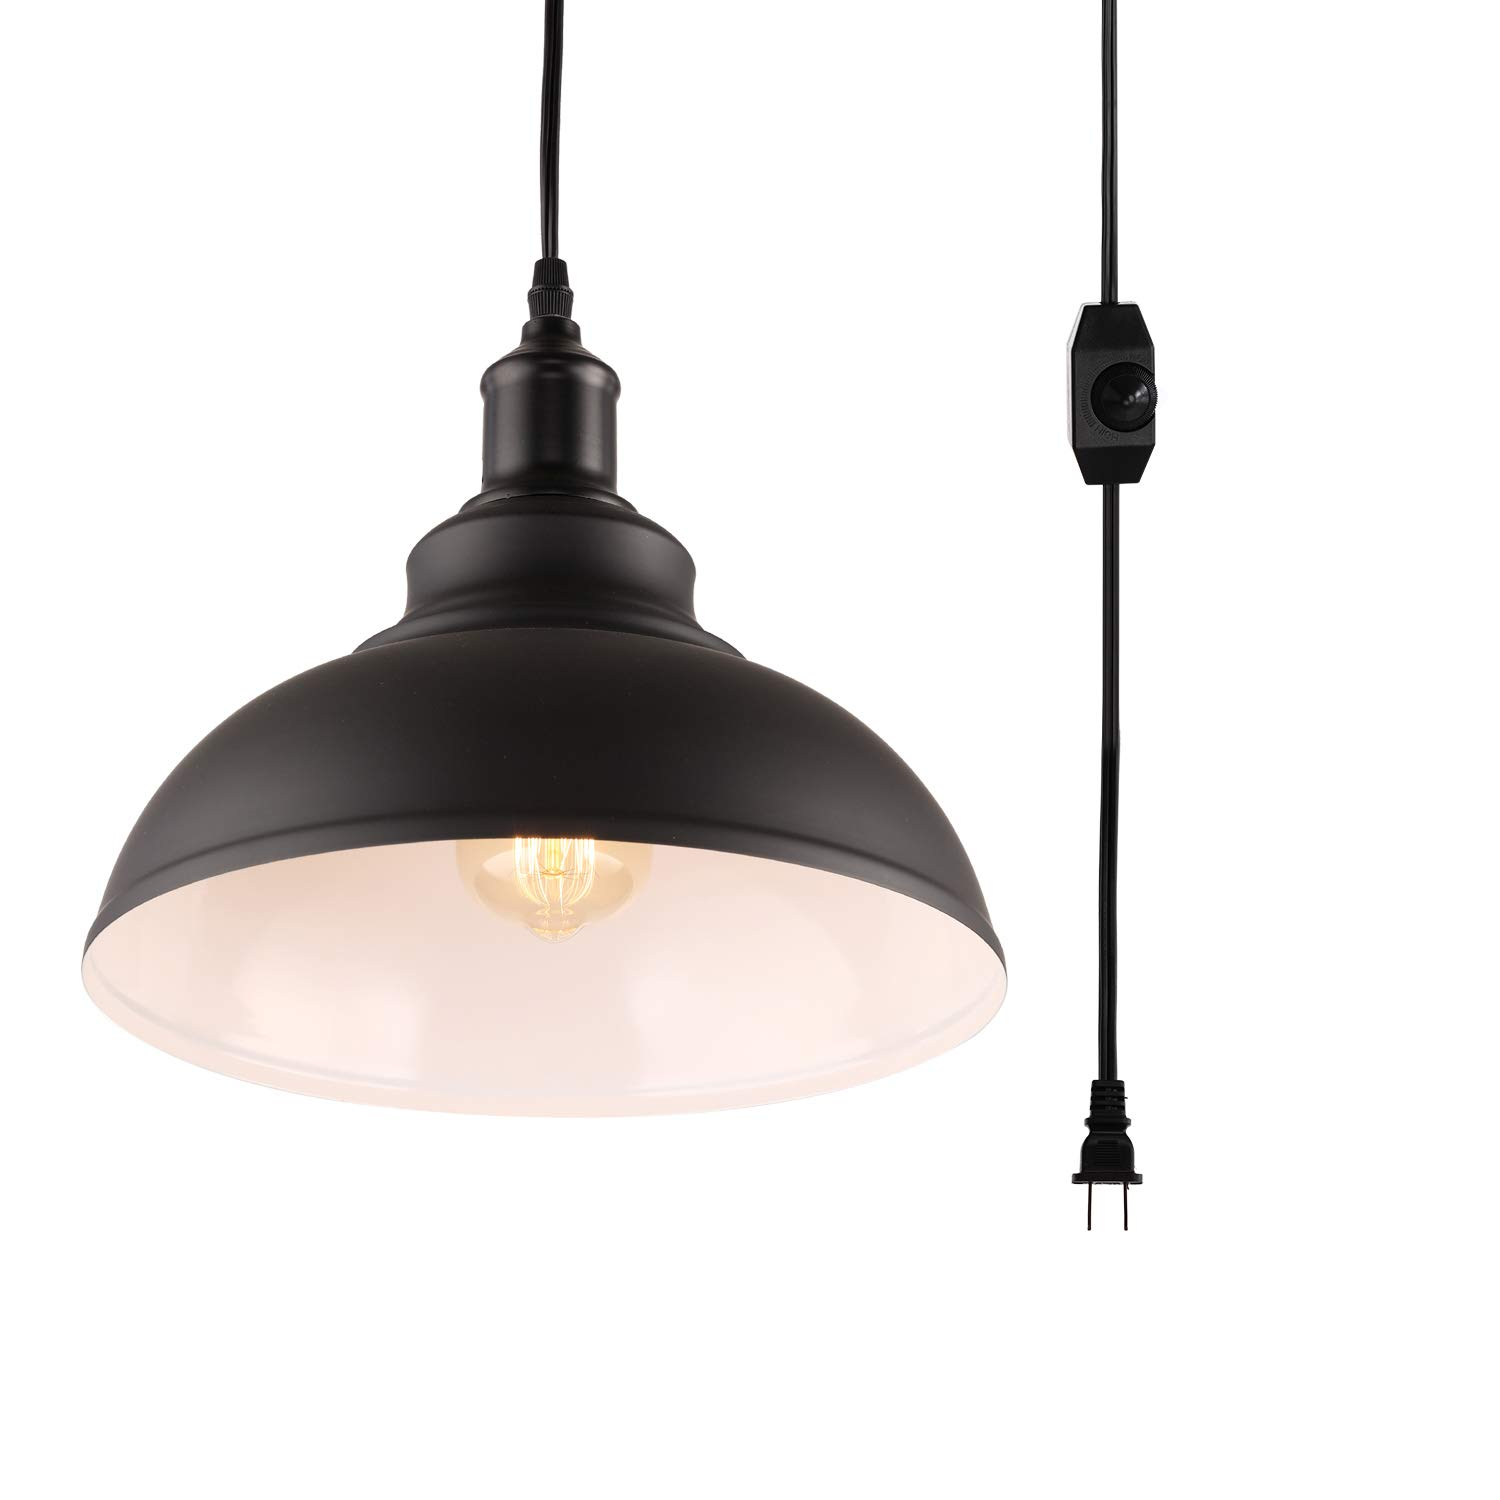 HMVPL Industrial Barn Pendant Light with Plug in Cord and On/Off Dimmer Switch, Metal Hanging Ceiling Lamp for Kitchen Island, Dining Room, Bedroom or Barn